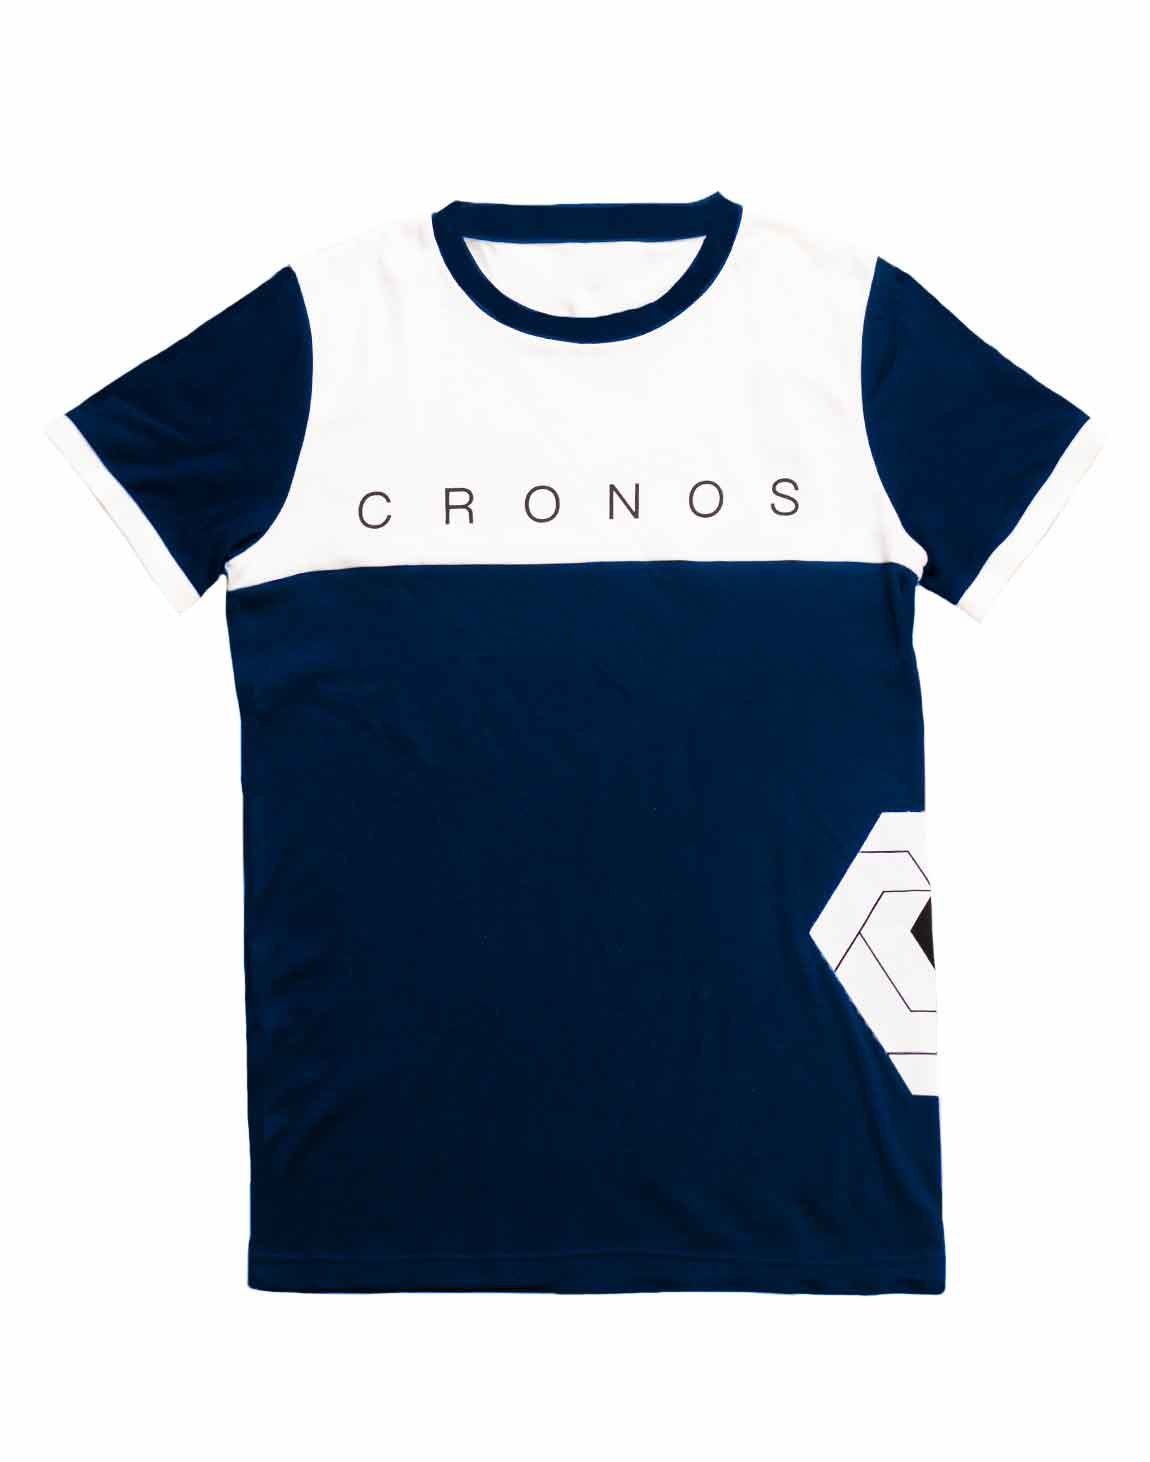 <img class='new_mark_img1' src='https://img.shop-pro.jp/img/new/icons1.gif' style='border:none;display:inline;margin:0px;padding:0px;width:auto;' />CRONOS Bi-COLOR SIDE LOGO T-SHIRTS【NAVY×WHITE】